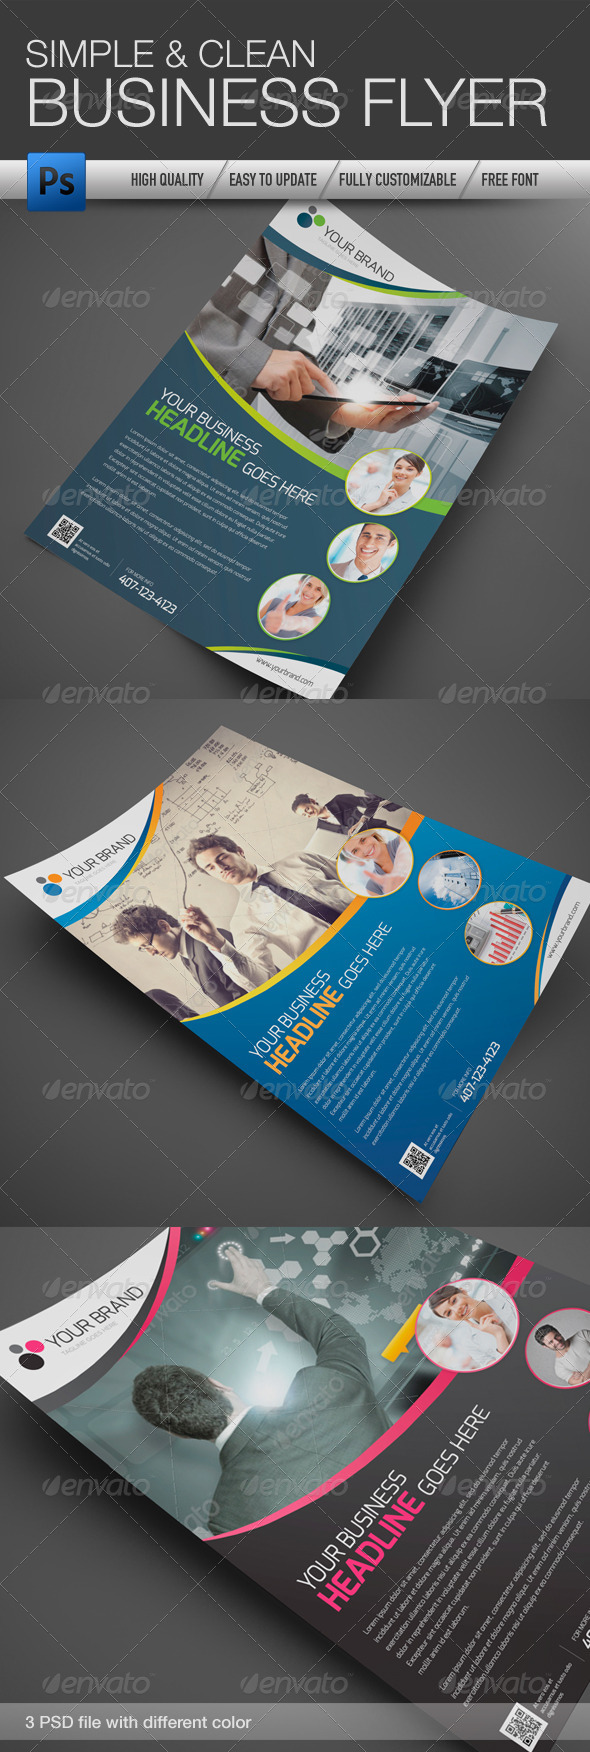 GraphicRiver Professional and Clean Business Flyer 2 4322733